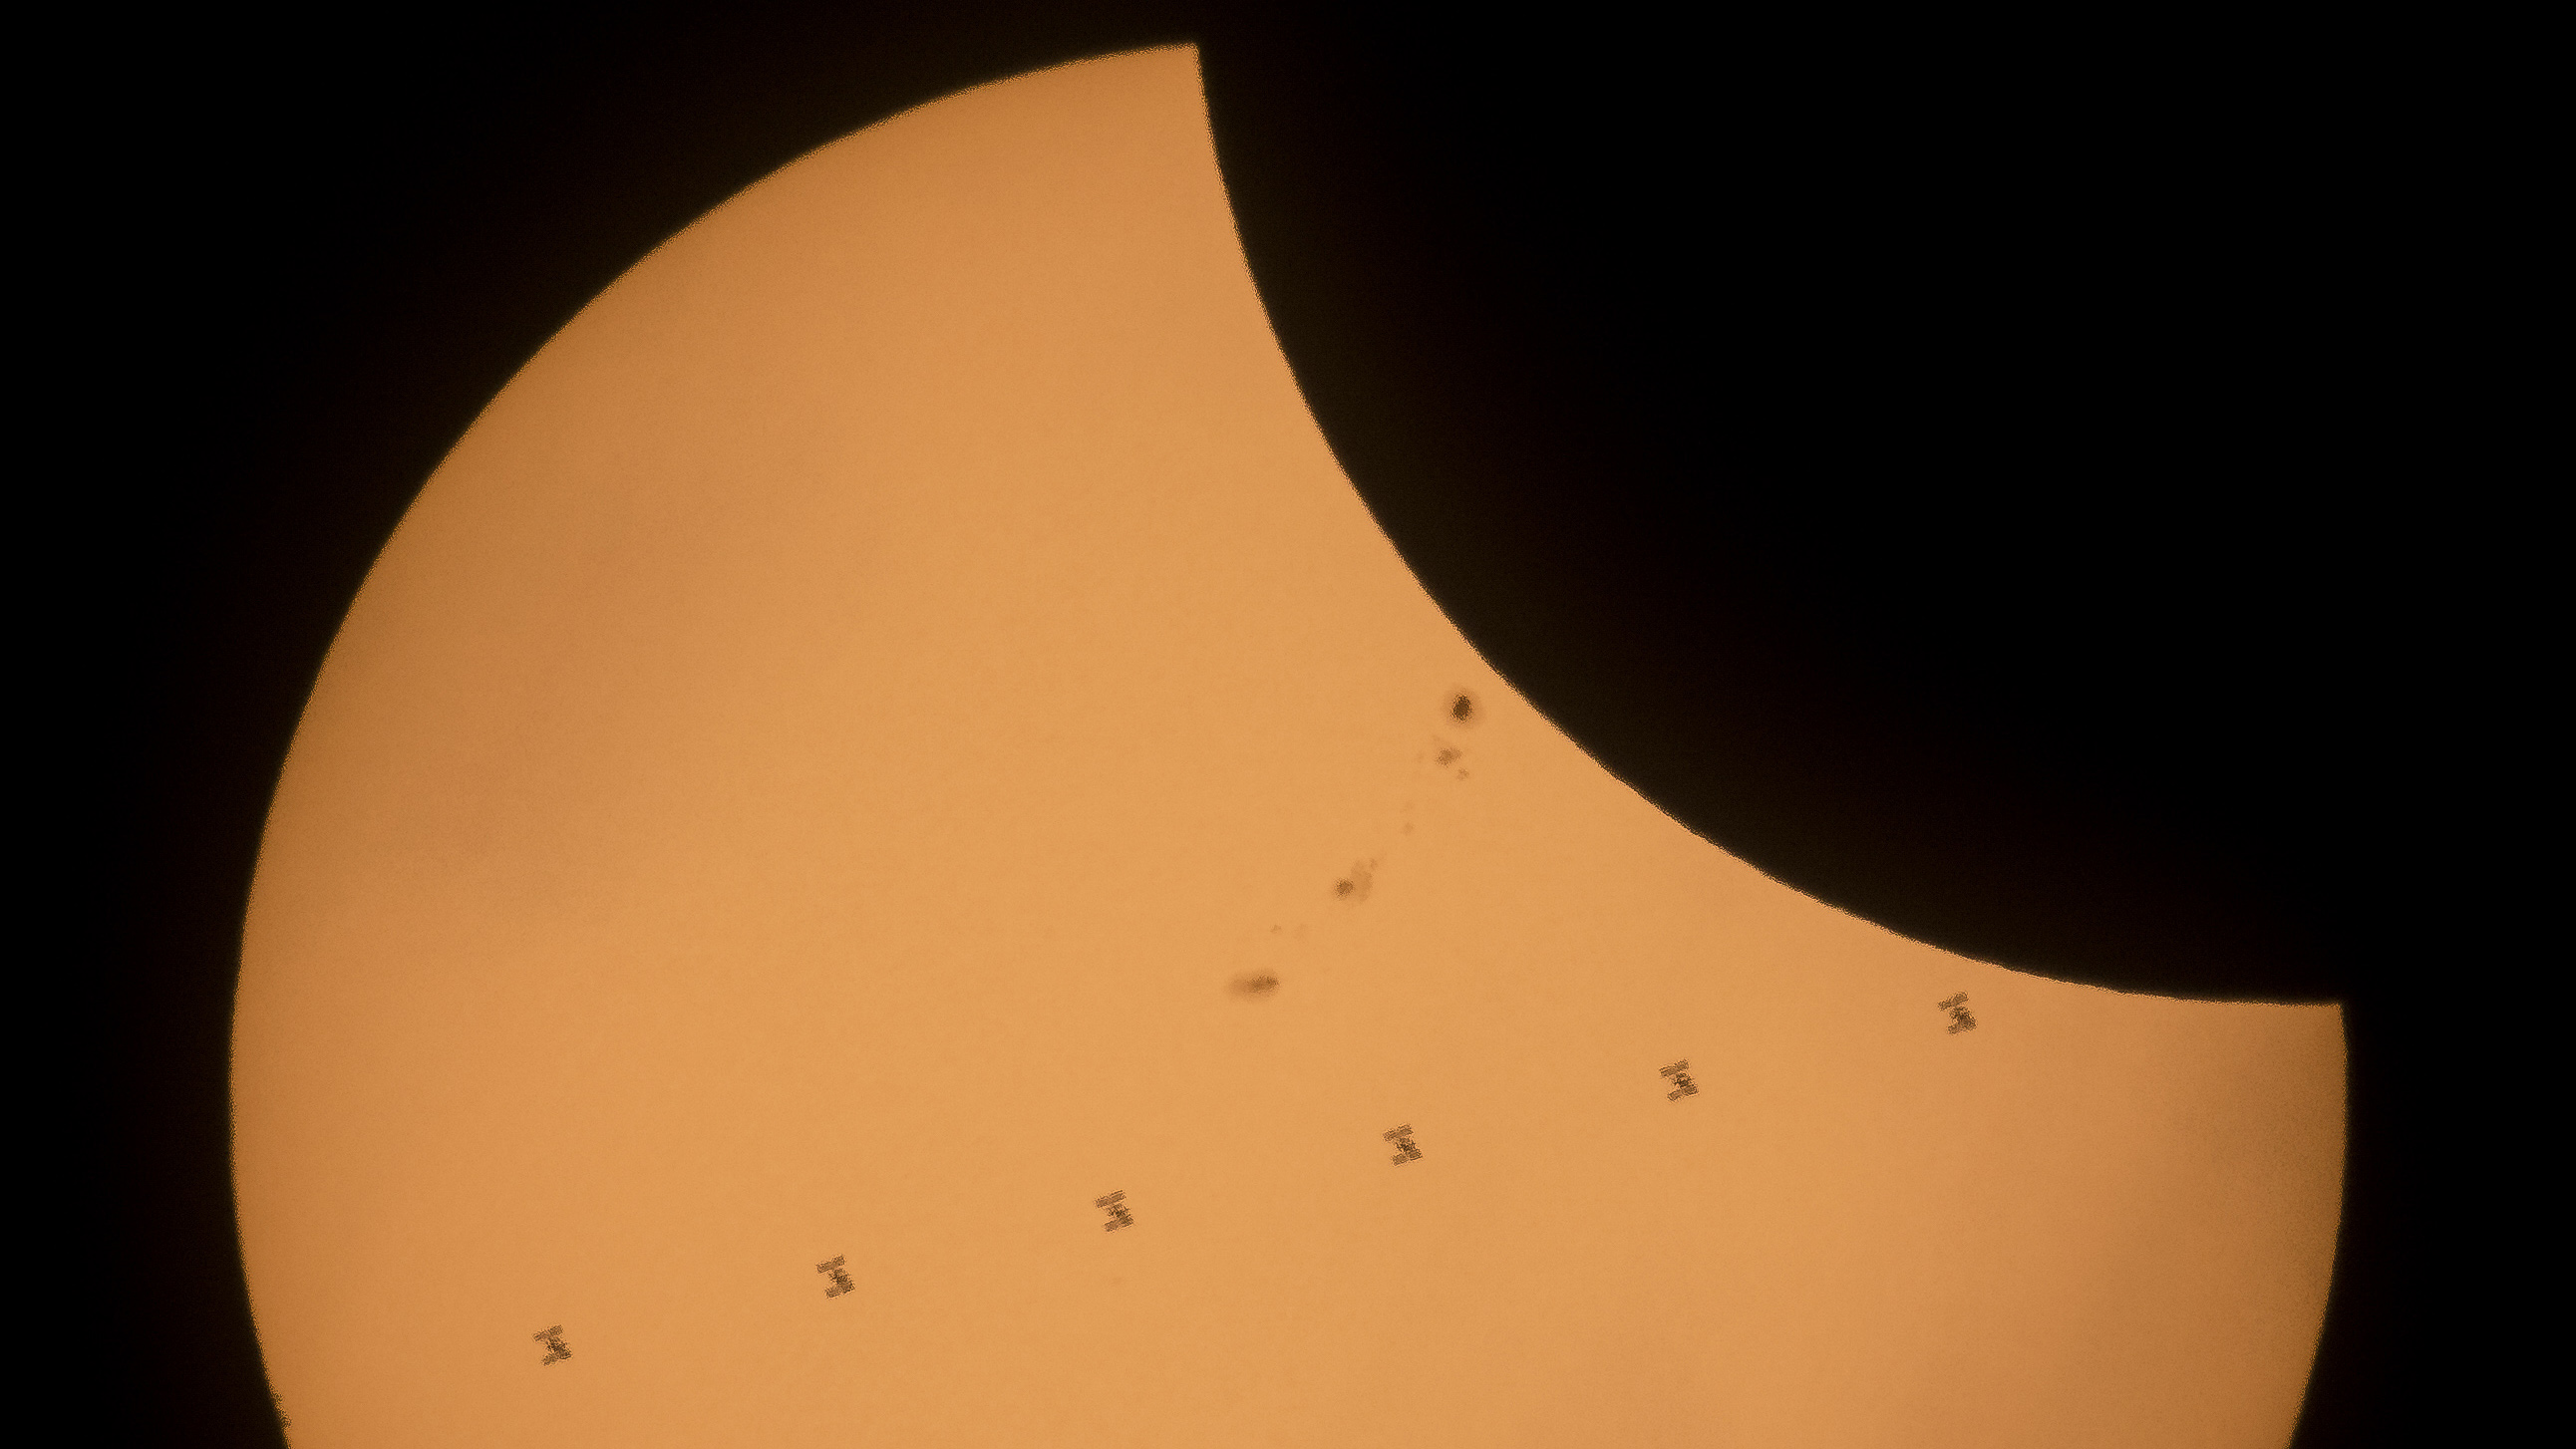 This composite image, made from seven frames, shows the International Space Station, with a crew of six onboard, as it transits the Sun at roughly five miles per second during a partial solar eclipse, Monday, Aug. 21, 2017 near Banner, Wyoming. Onboard as part of Expedition 52 are: NASA astronauts Peggy Whitson, Jack Fischer, and Randy Bresnik; Russian cosmonauts Fyodor Yurchikhin and Sergey Ryazanskiy; and ESA (European Space Agency) astronaut Paolo Nespoli. A total solar eclipse swept across a narrow portion of the contiguous United States from Lincoln Beach, Oregon to Charleston, South Carolina. A partial solar eclipse was visible across the entire North American continent along with parts of South America, Africa, and Europe.  Photo Credit: (NASA/Joel Kowsky)